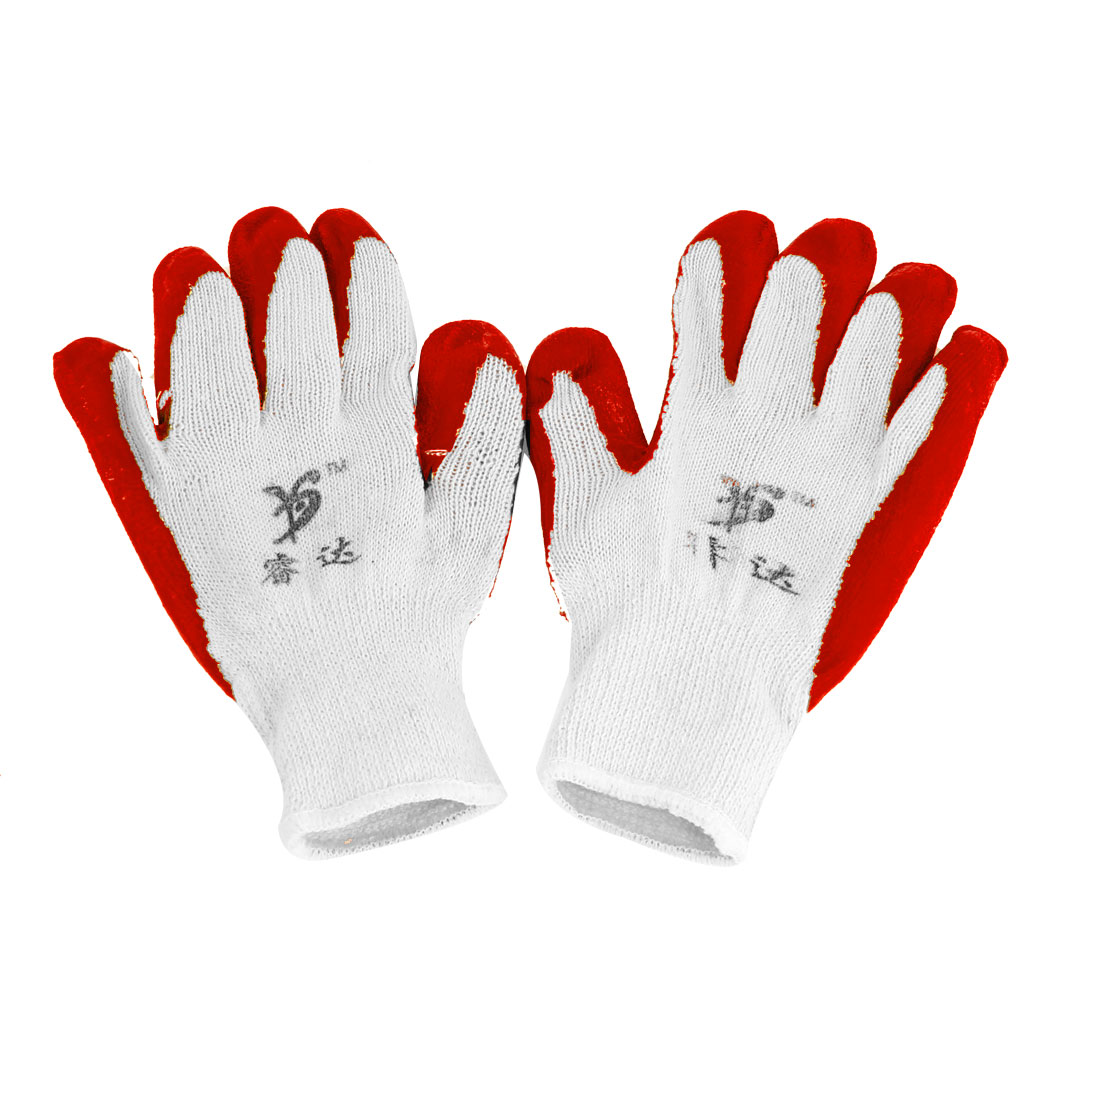 2 Pcs Elastic Cuff Latex Rubber Wrapped Plam Work Labor Gloves Red White